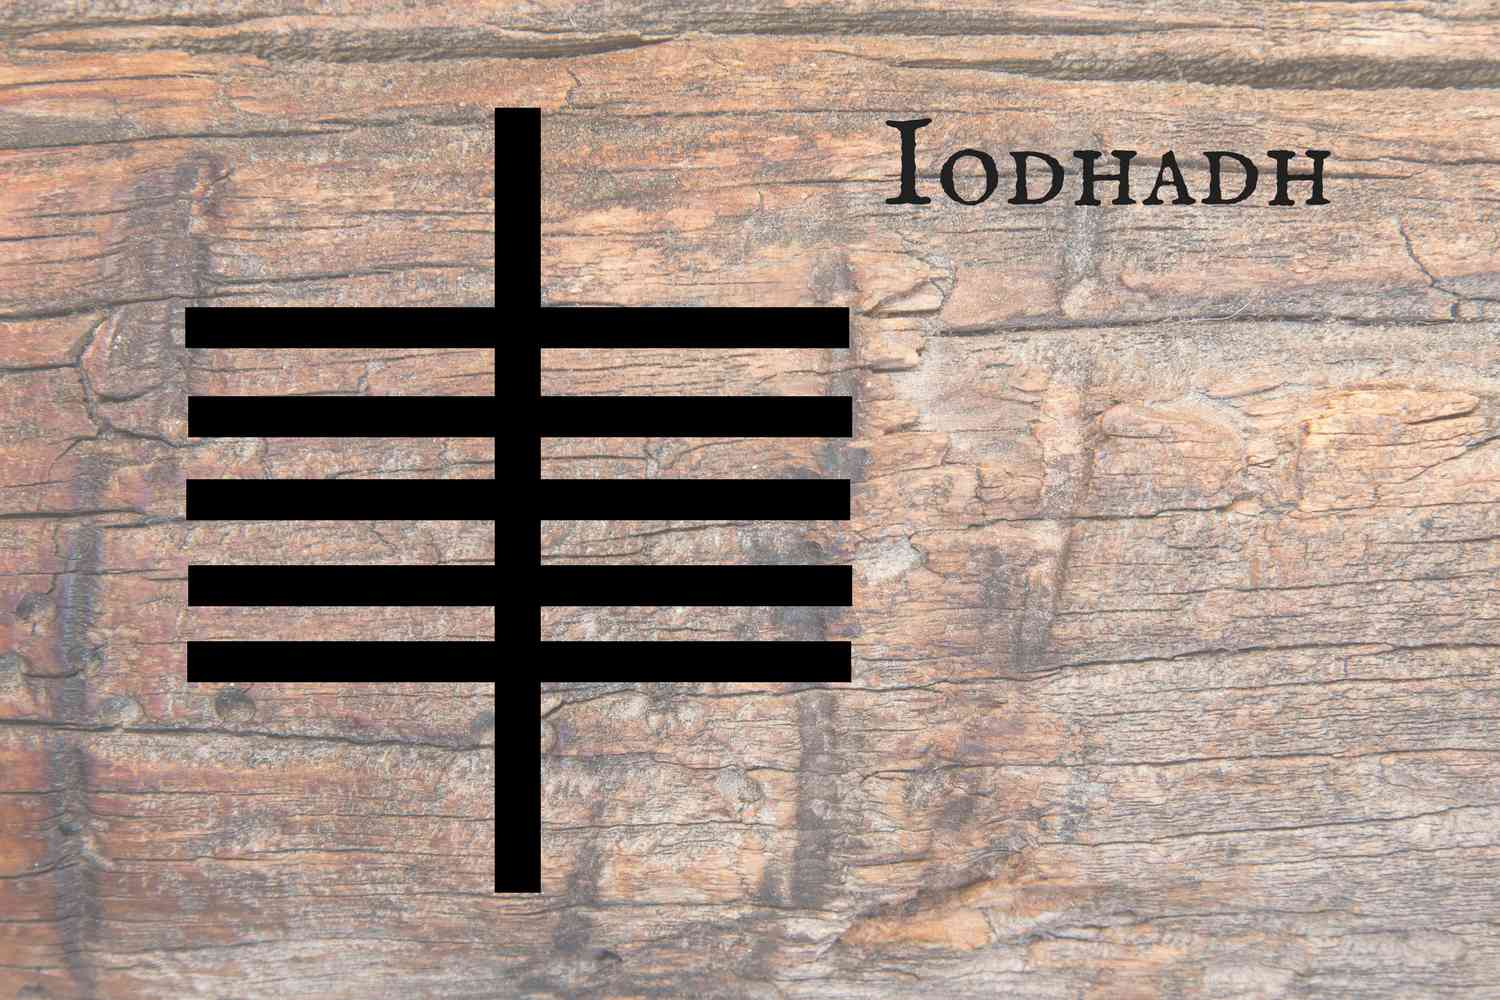 Celtic ogham symbols and their meanings biocorpaavc Image collections